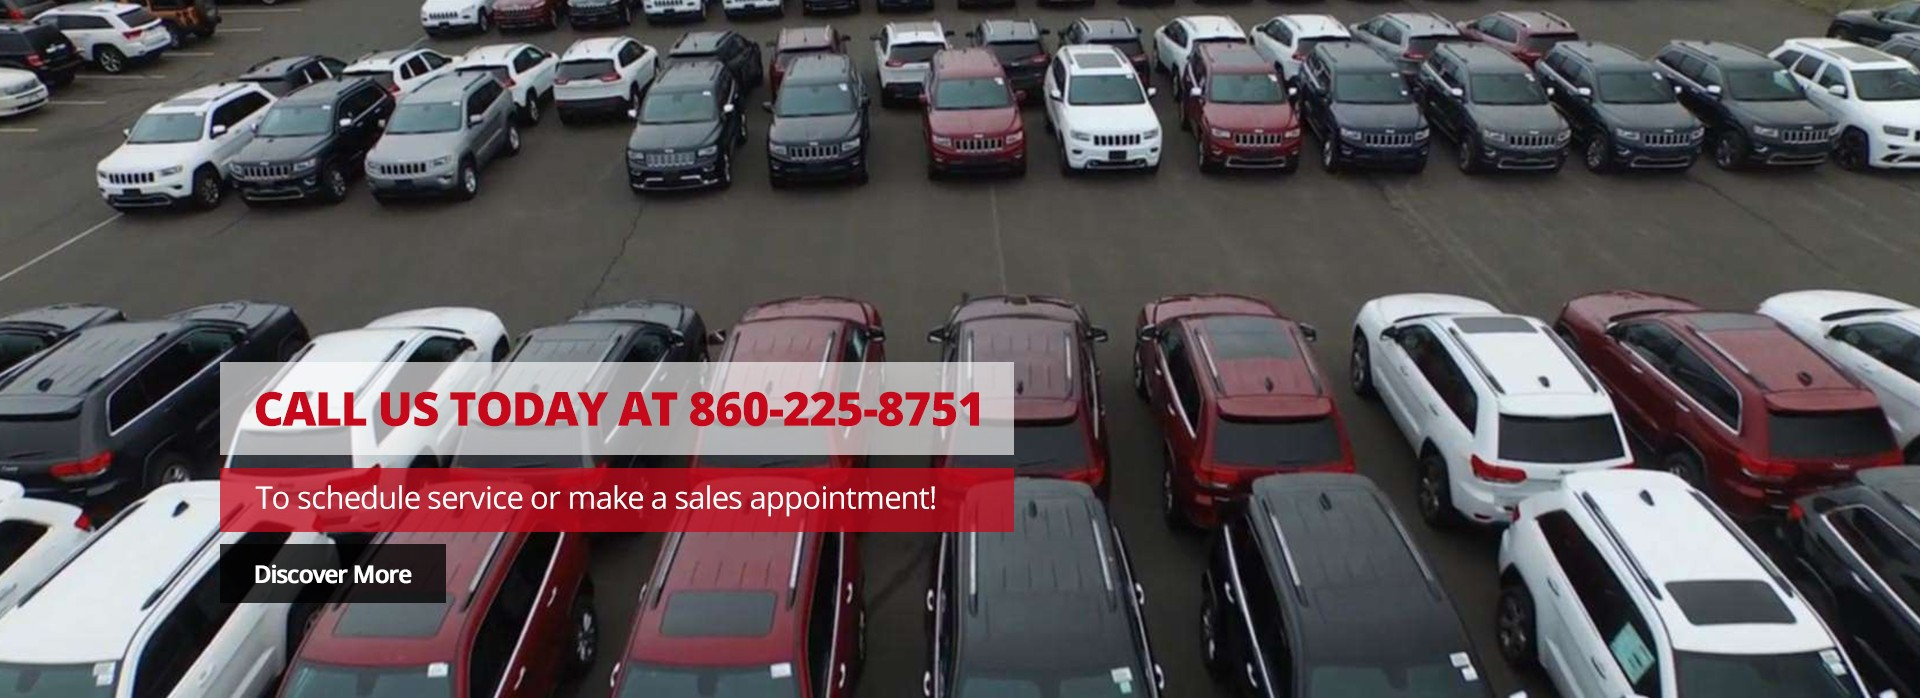 Call us Today at 860-225-8751 to Schedule a service or make a sales appointment. Discover More